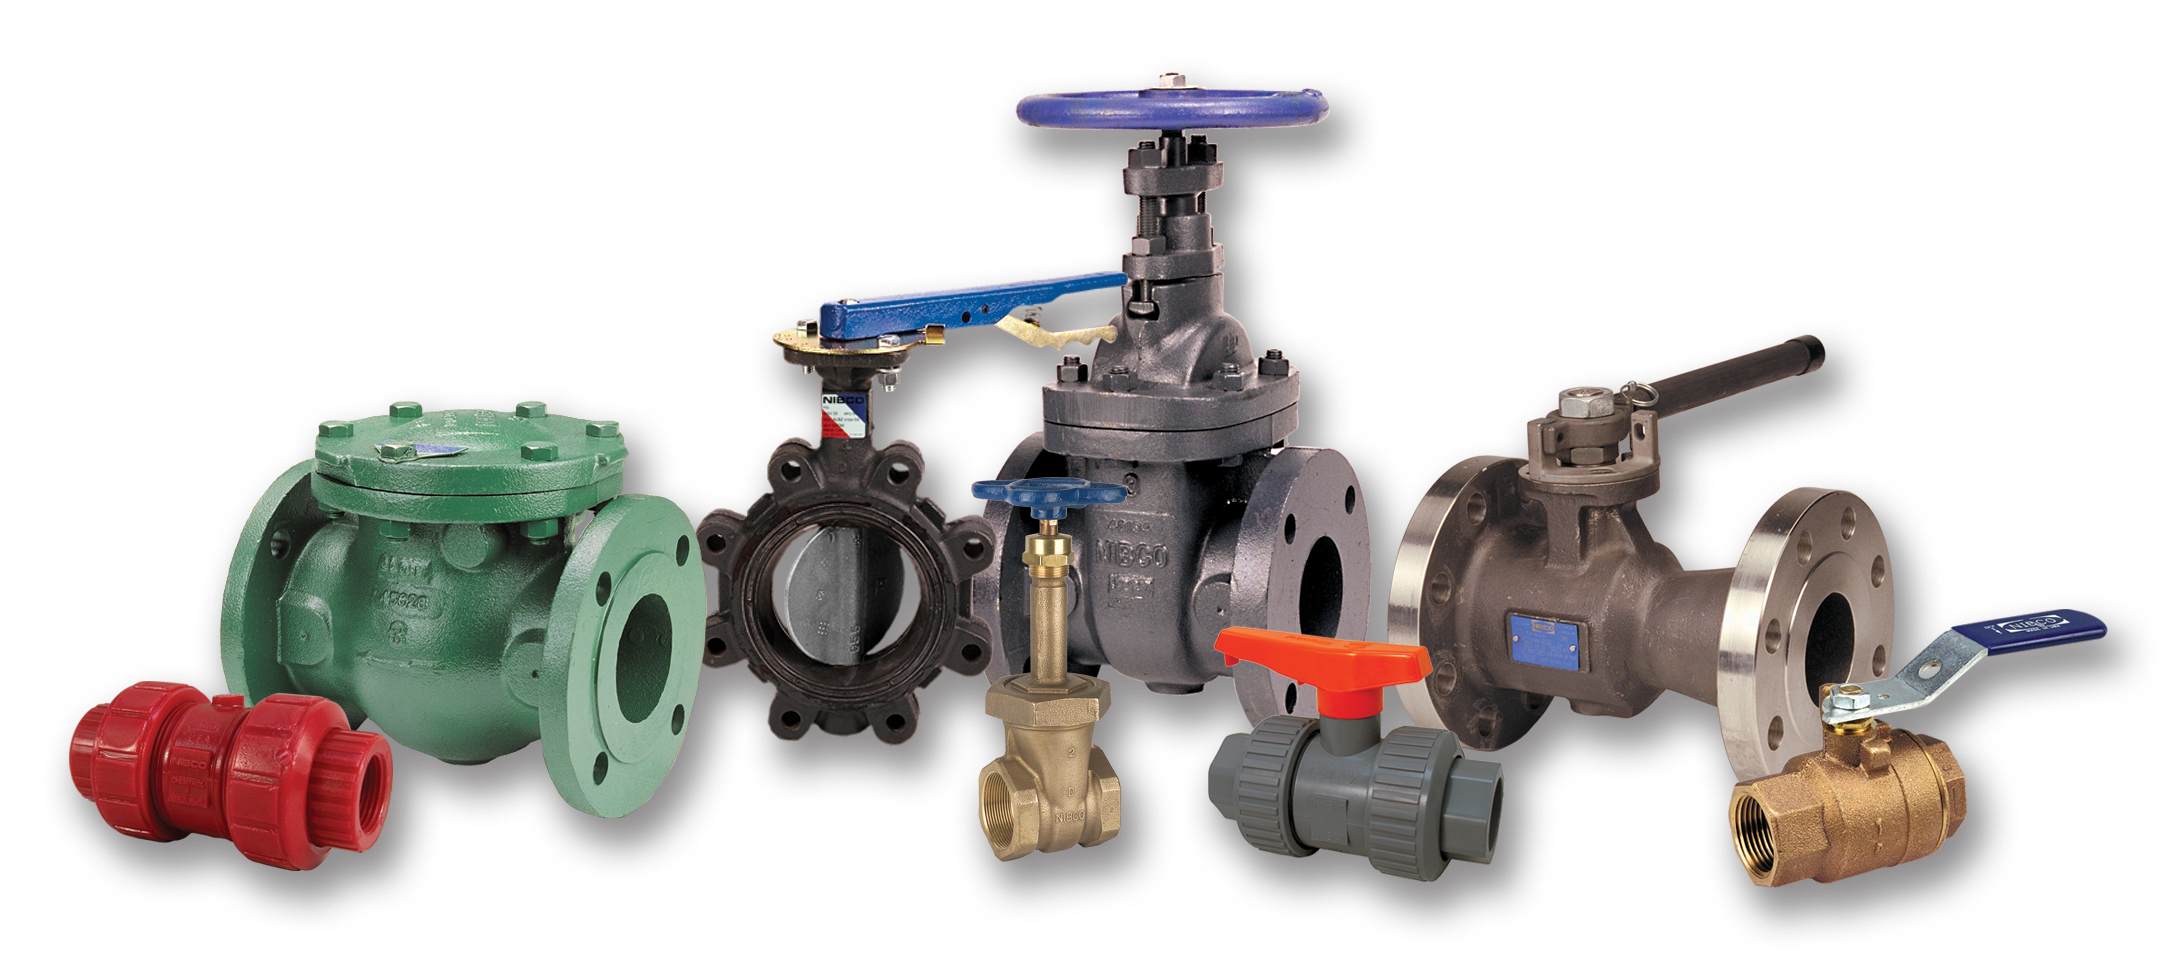 NIBCO Industrial Valves and Actuation